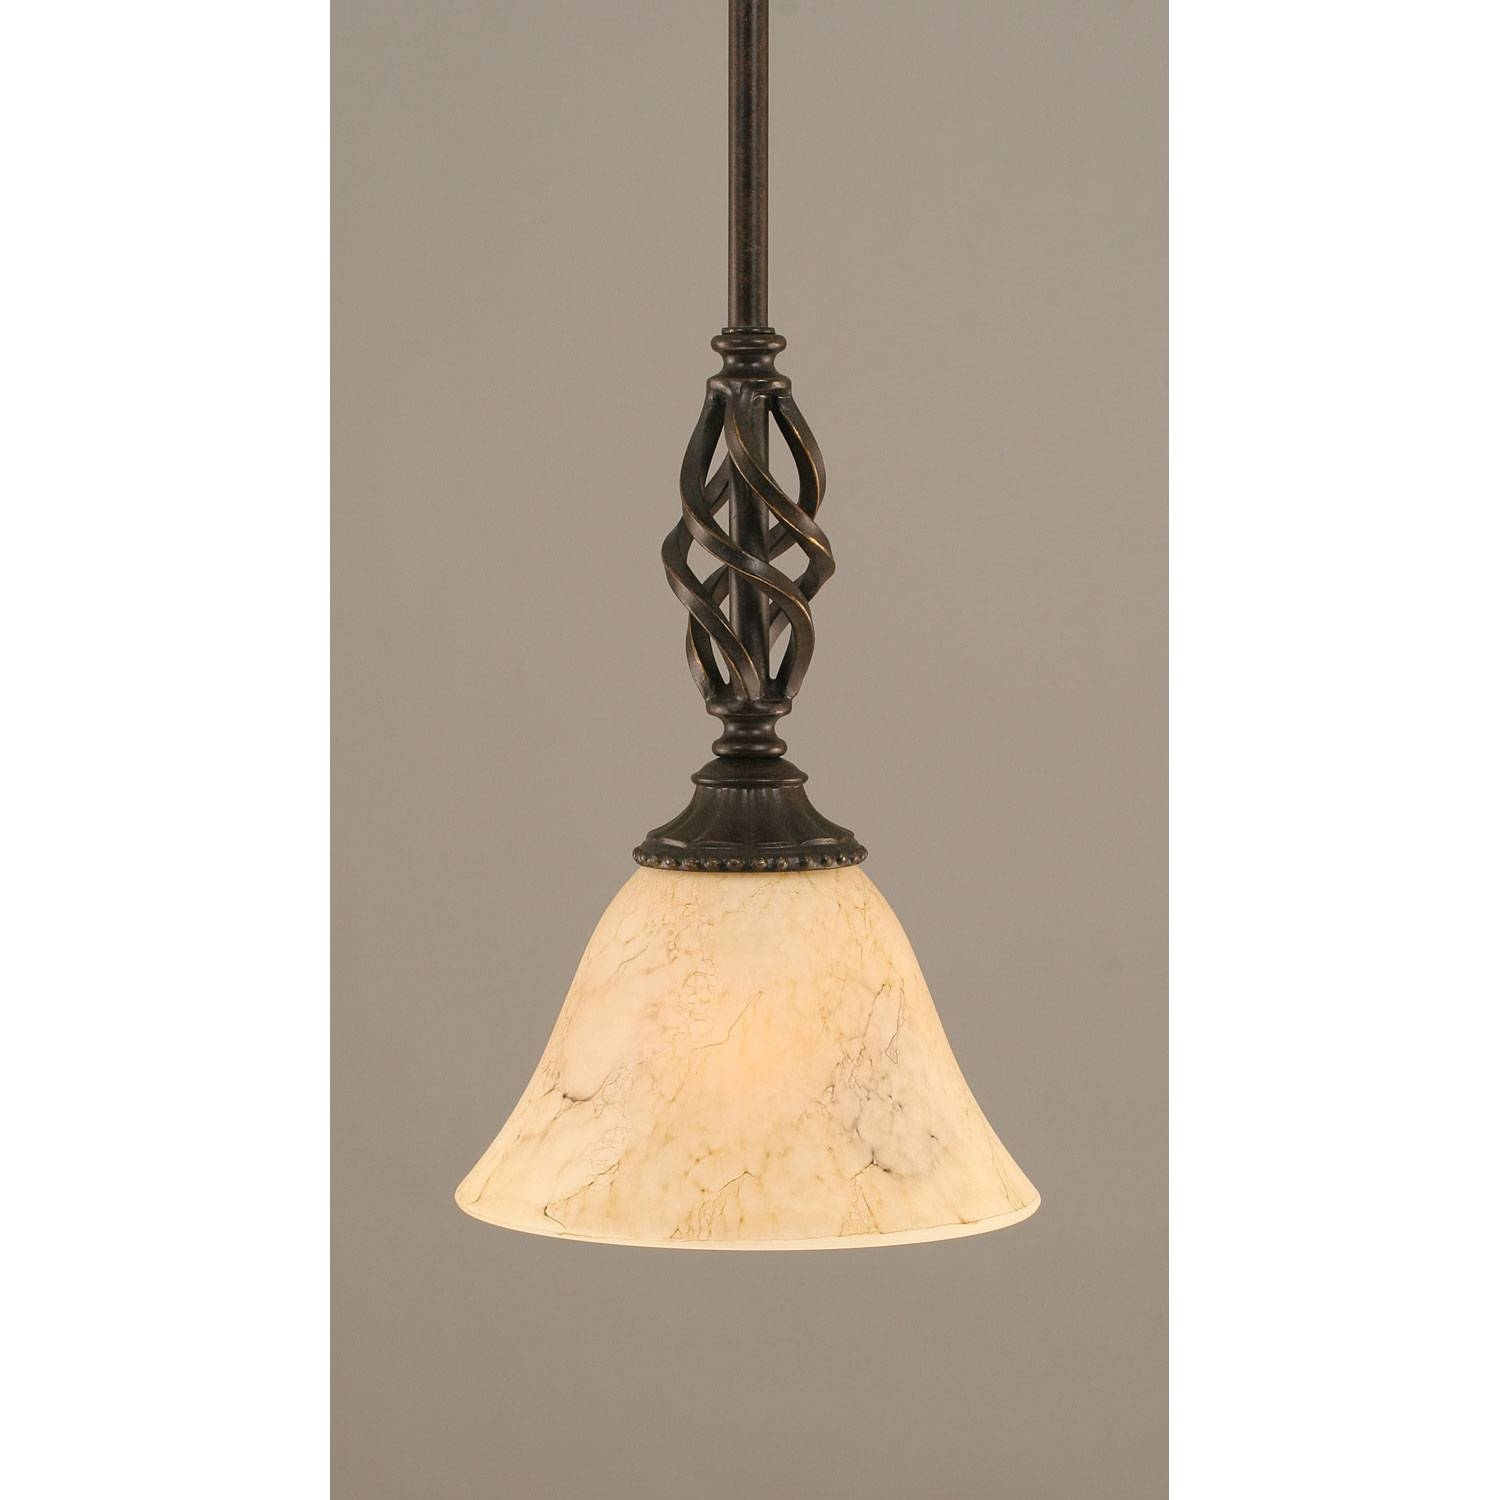 Mini Pendant Lighting | Bronze, Nickel, Steel Mini Pendants For with regard to Miniature Pendant Lights (Image 8 of 15)